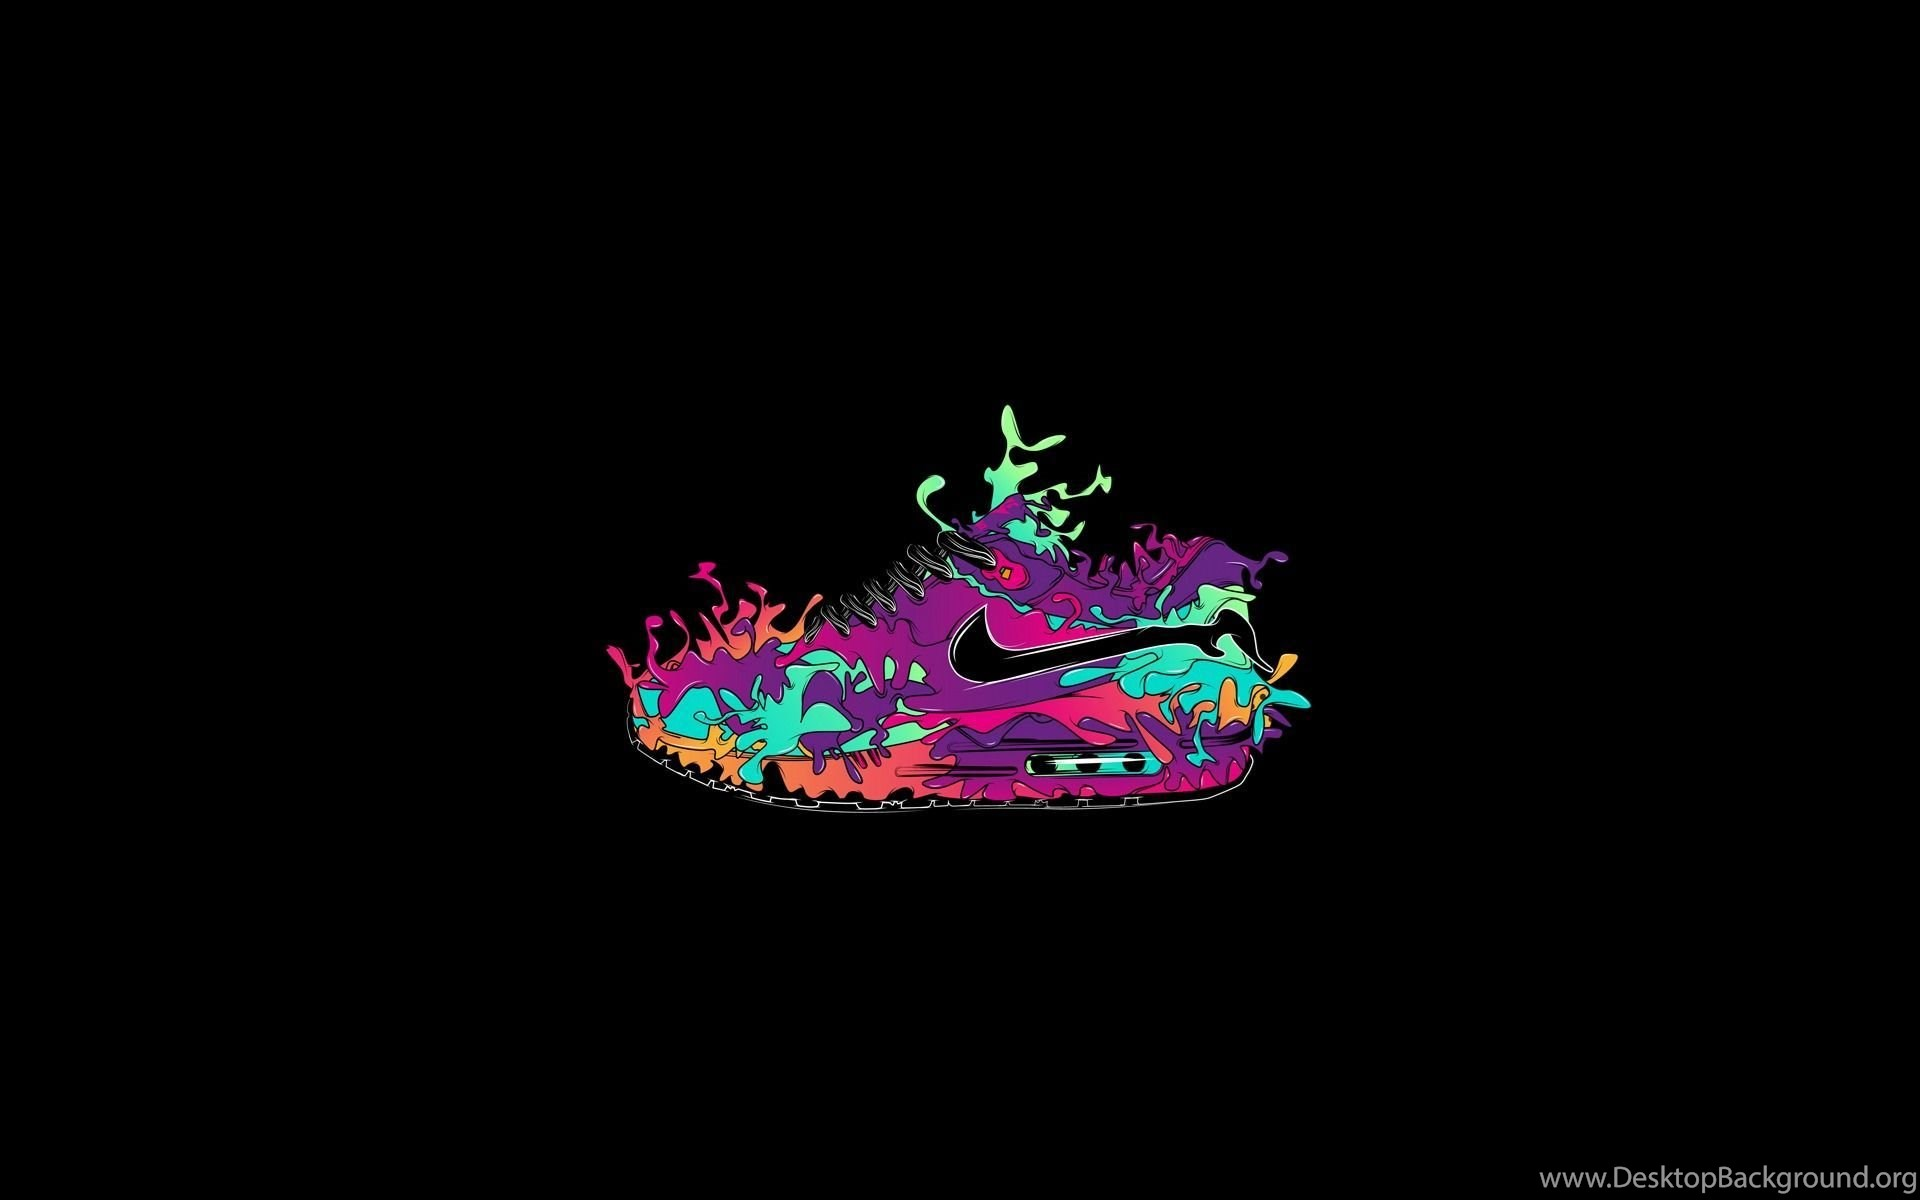 Mininalism Nike Creative Design Wallpapers Hd Poster Shoes